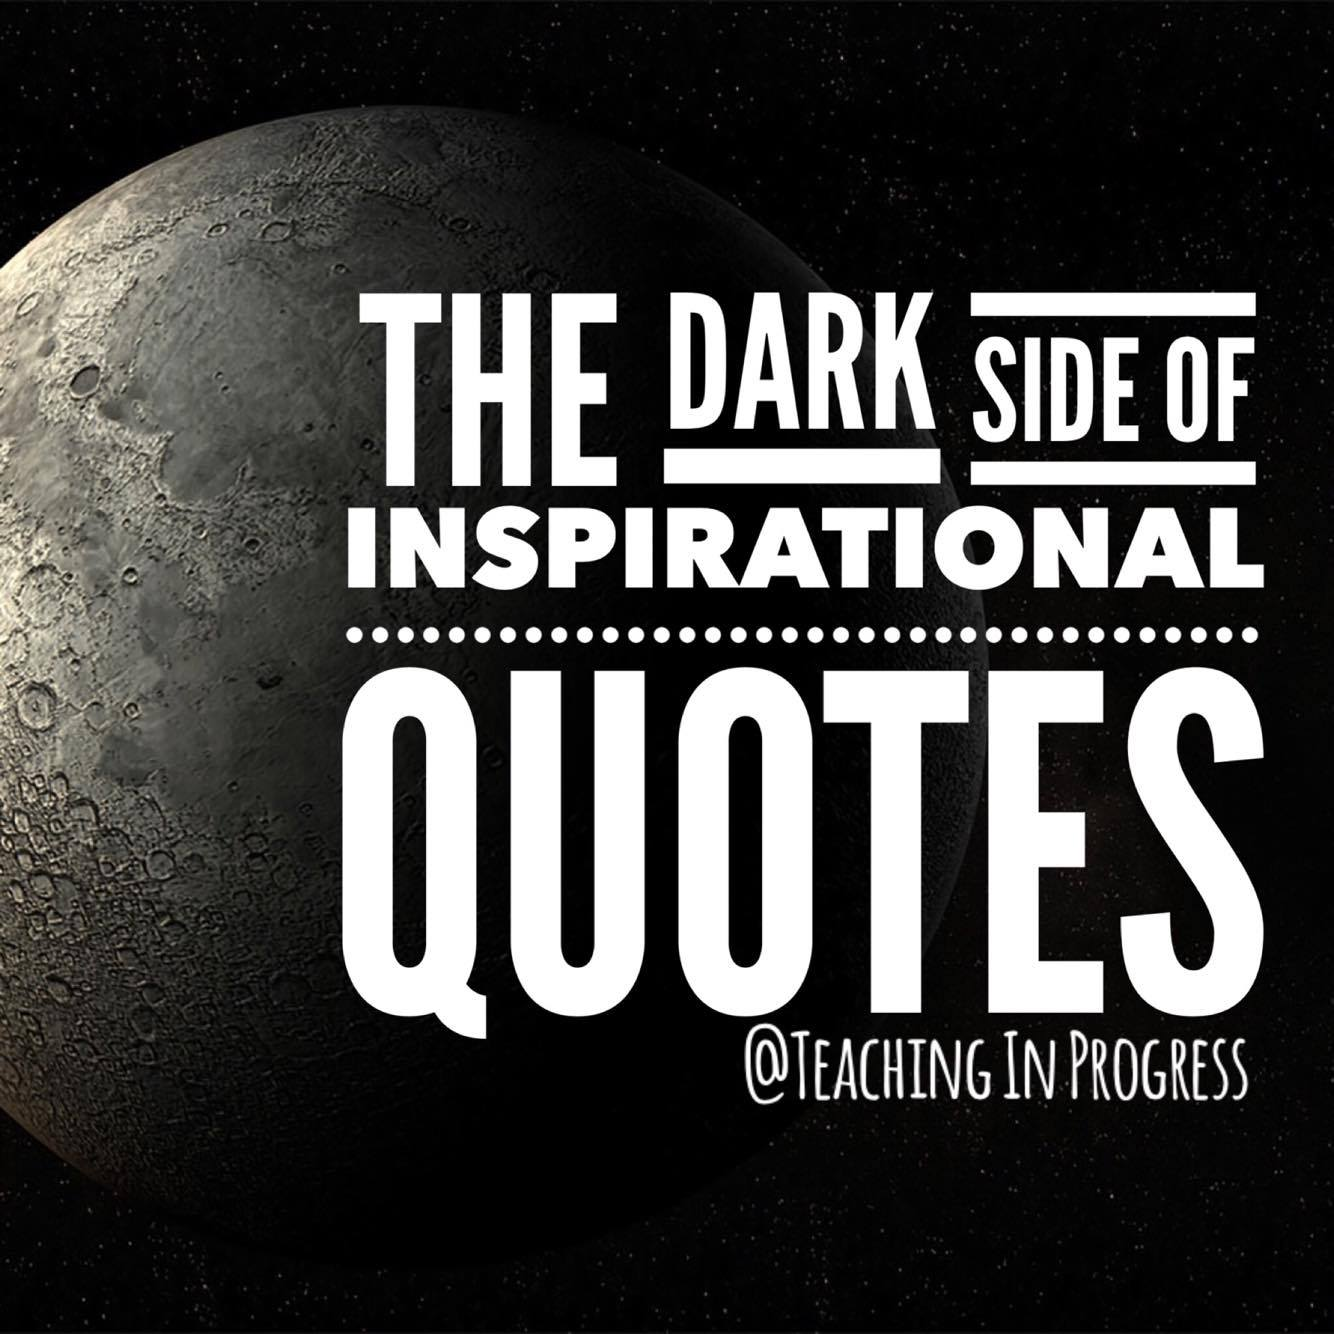 Inspirational Uplifting Quotes Alluring The Dark Side Of Inspirational Quotes  Teaching In Progress